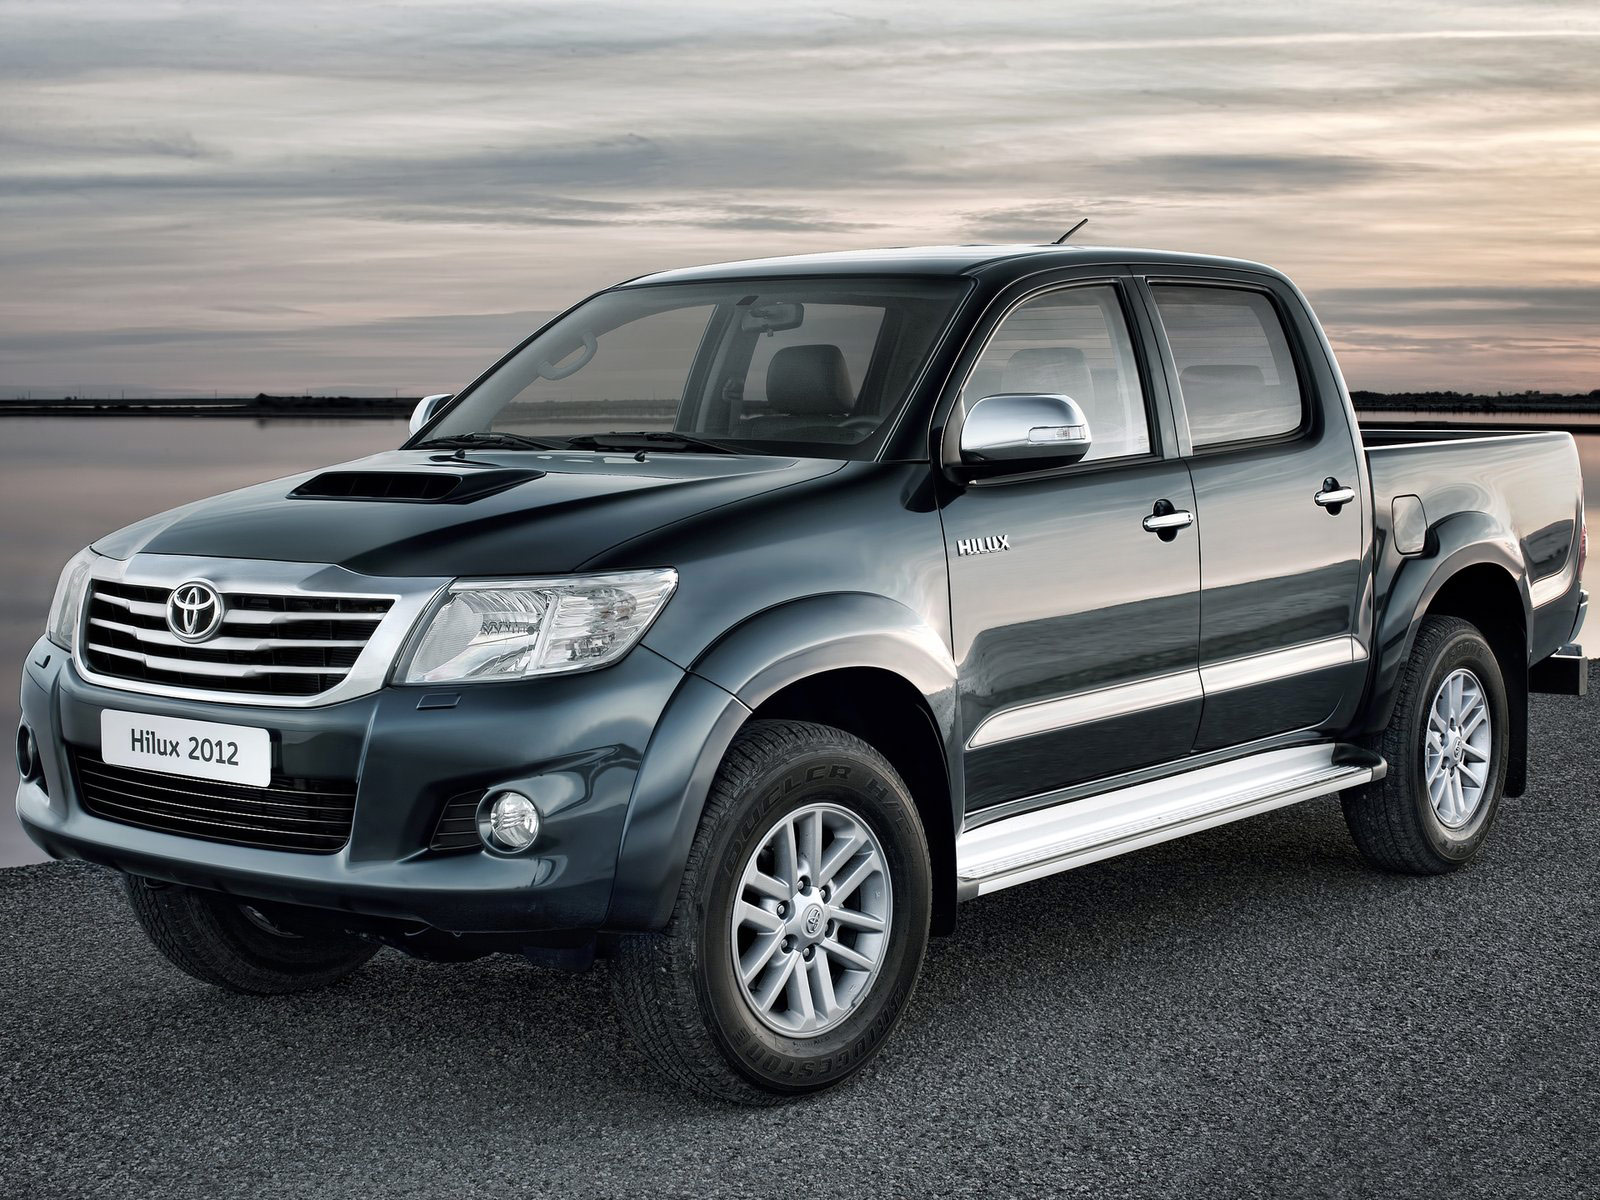 download-toyota-hilux-2012-wallpaper-pictures